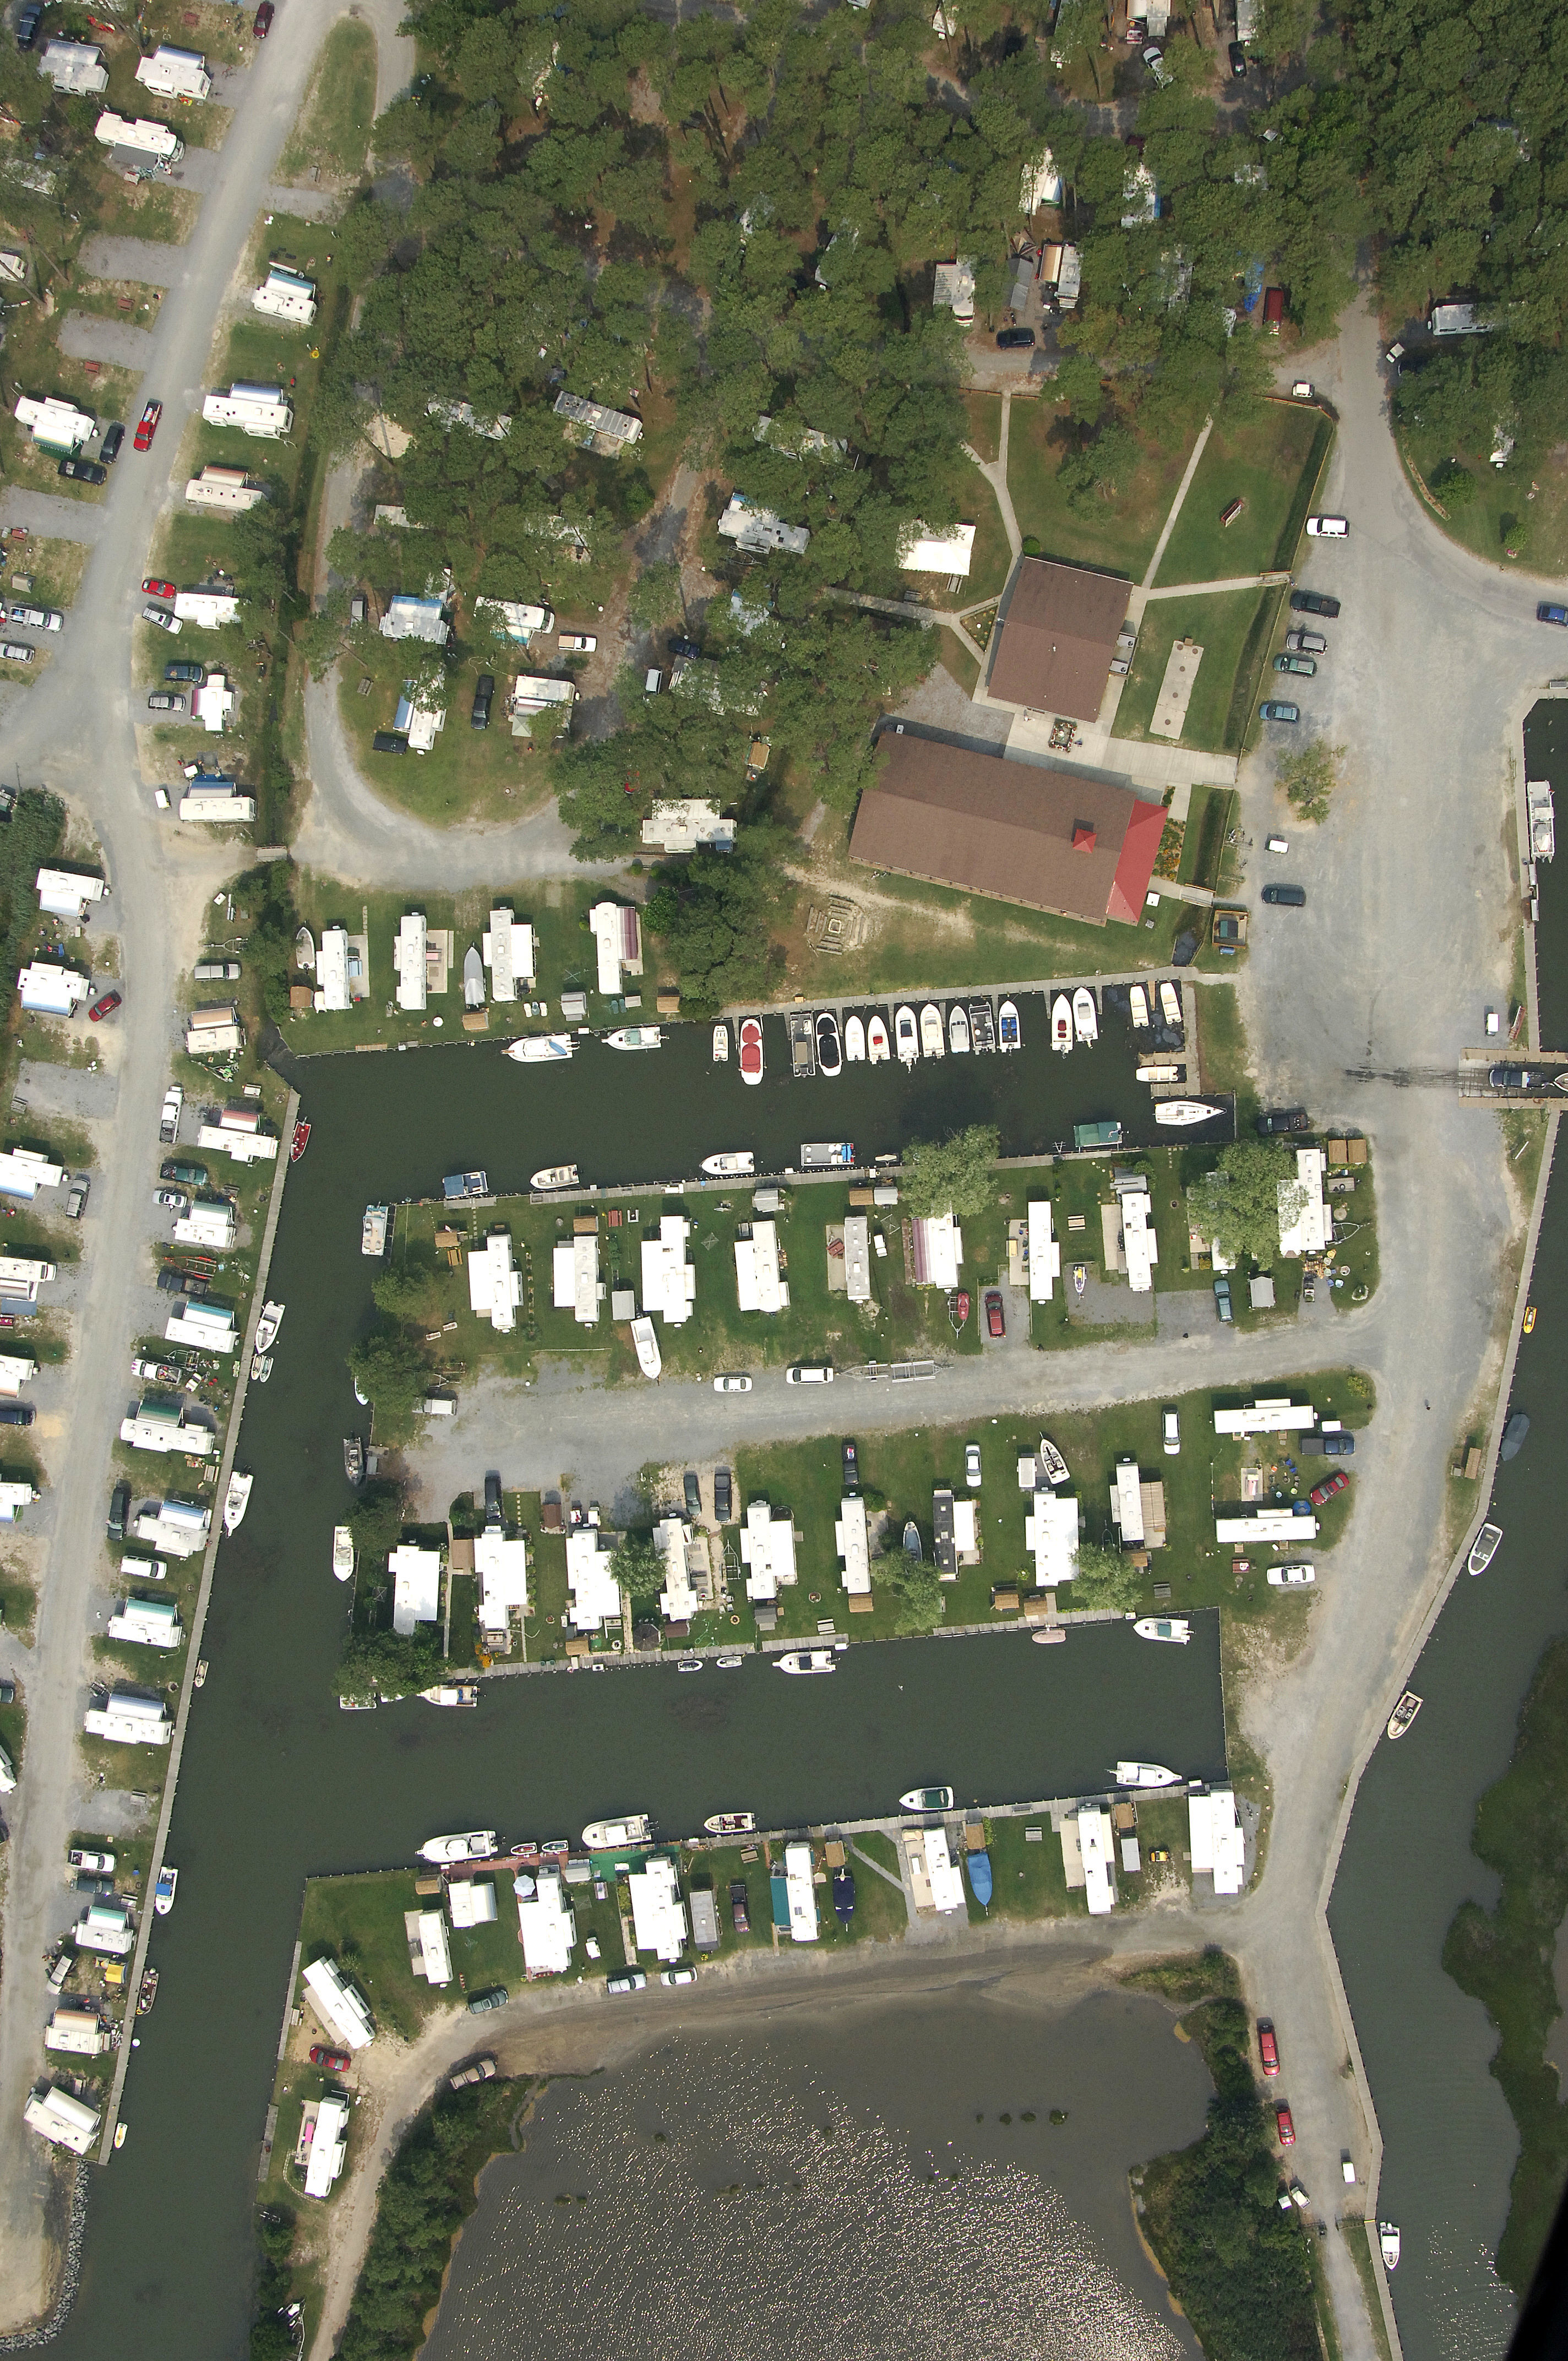 Frontier Phone Number >> Frontier Town Campground in Berlin, MD, United States - Marina Reviews - Phone Number - Marinas.com